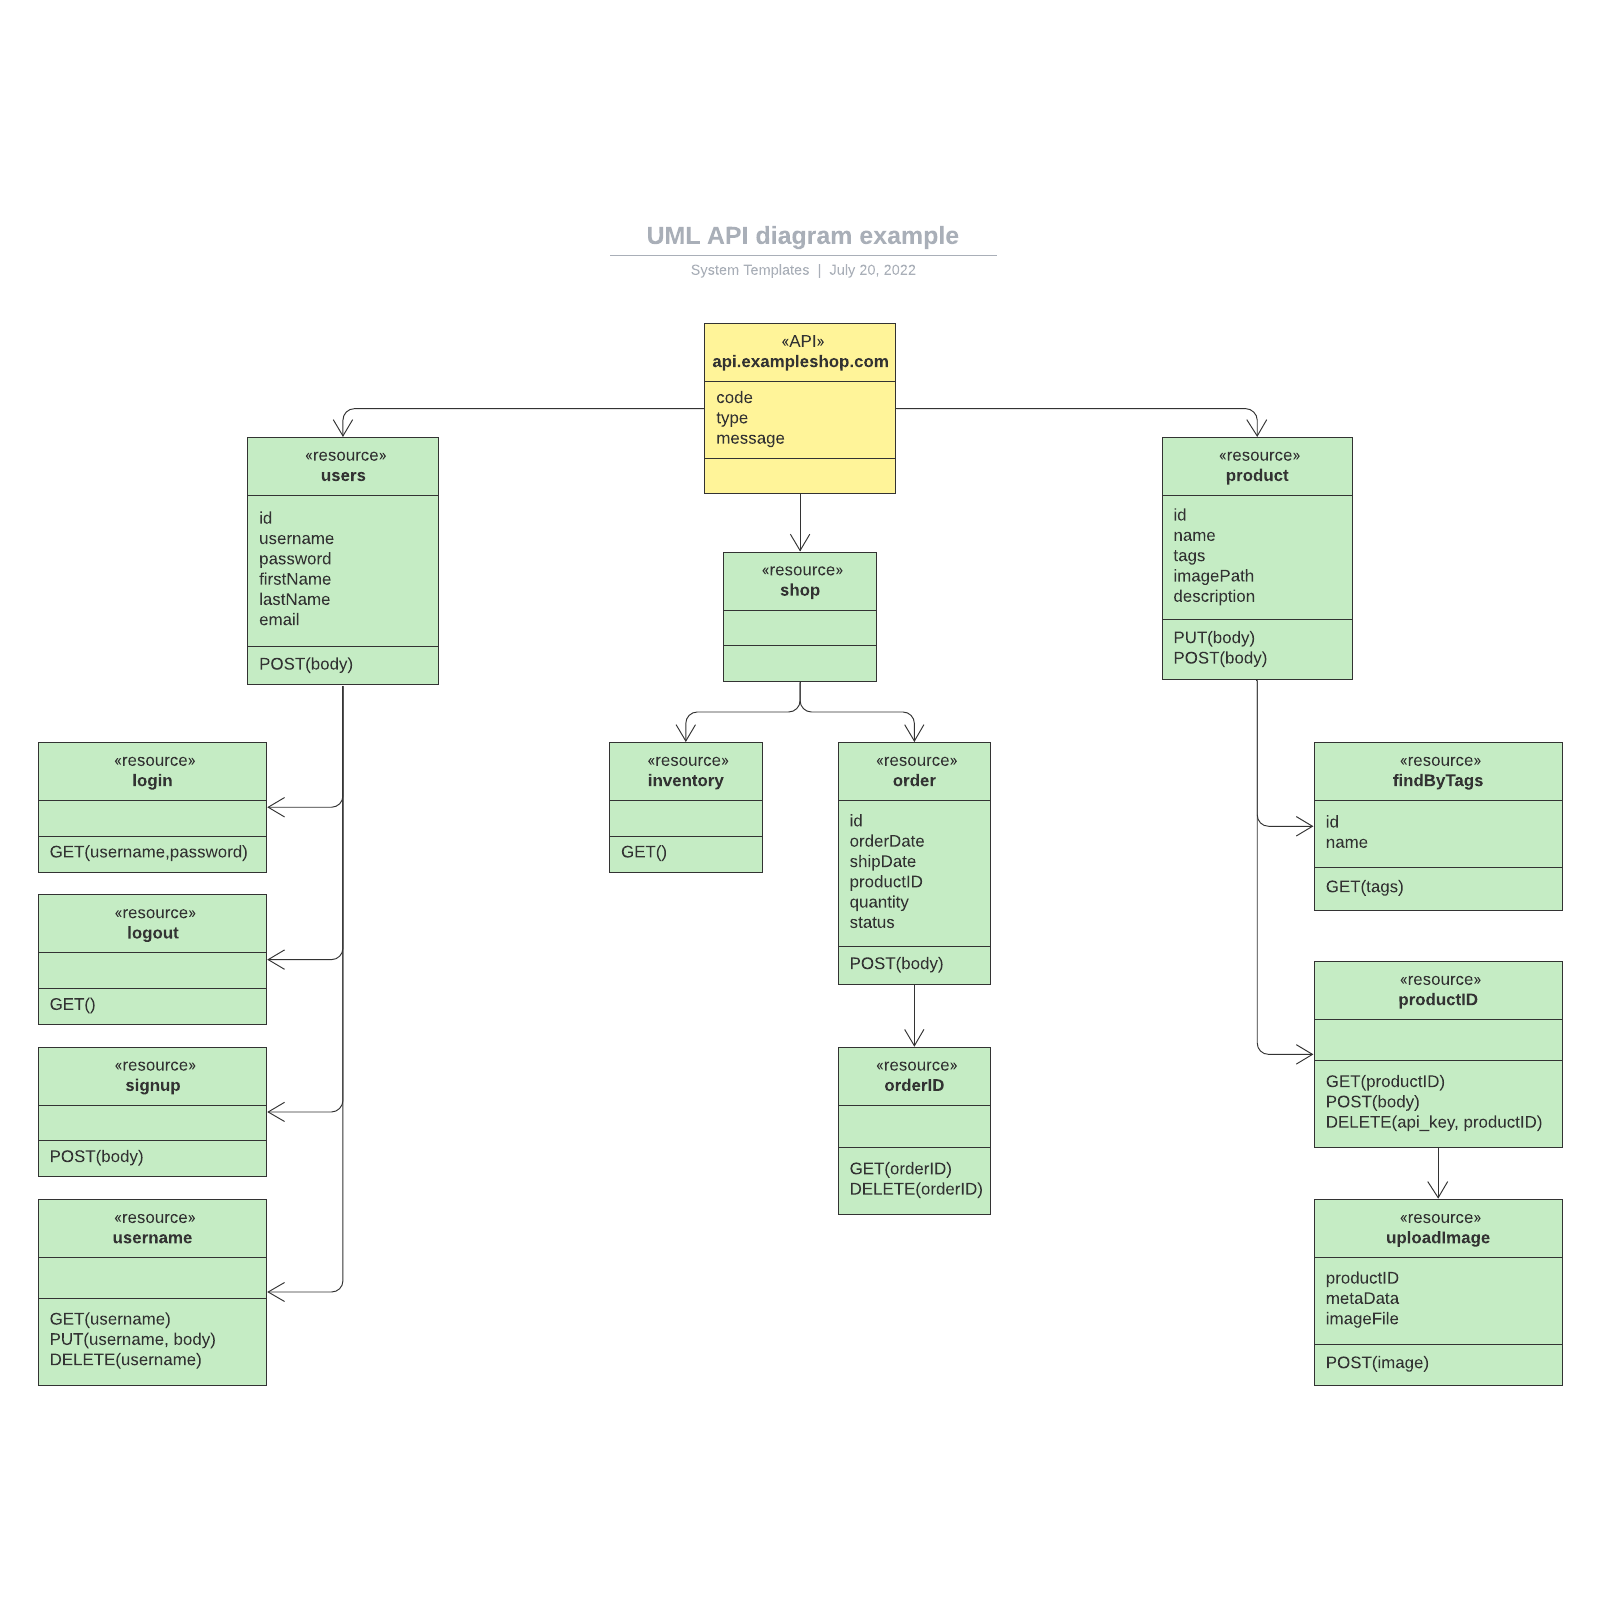 UML API diagram example